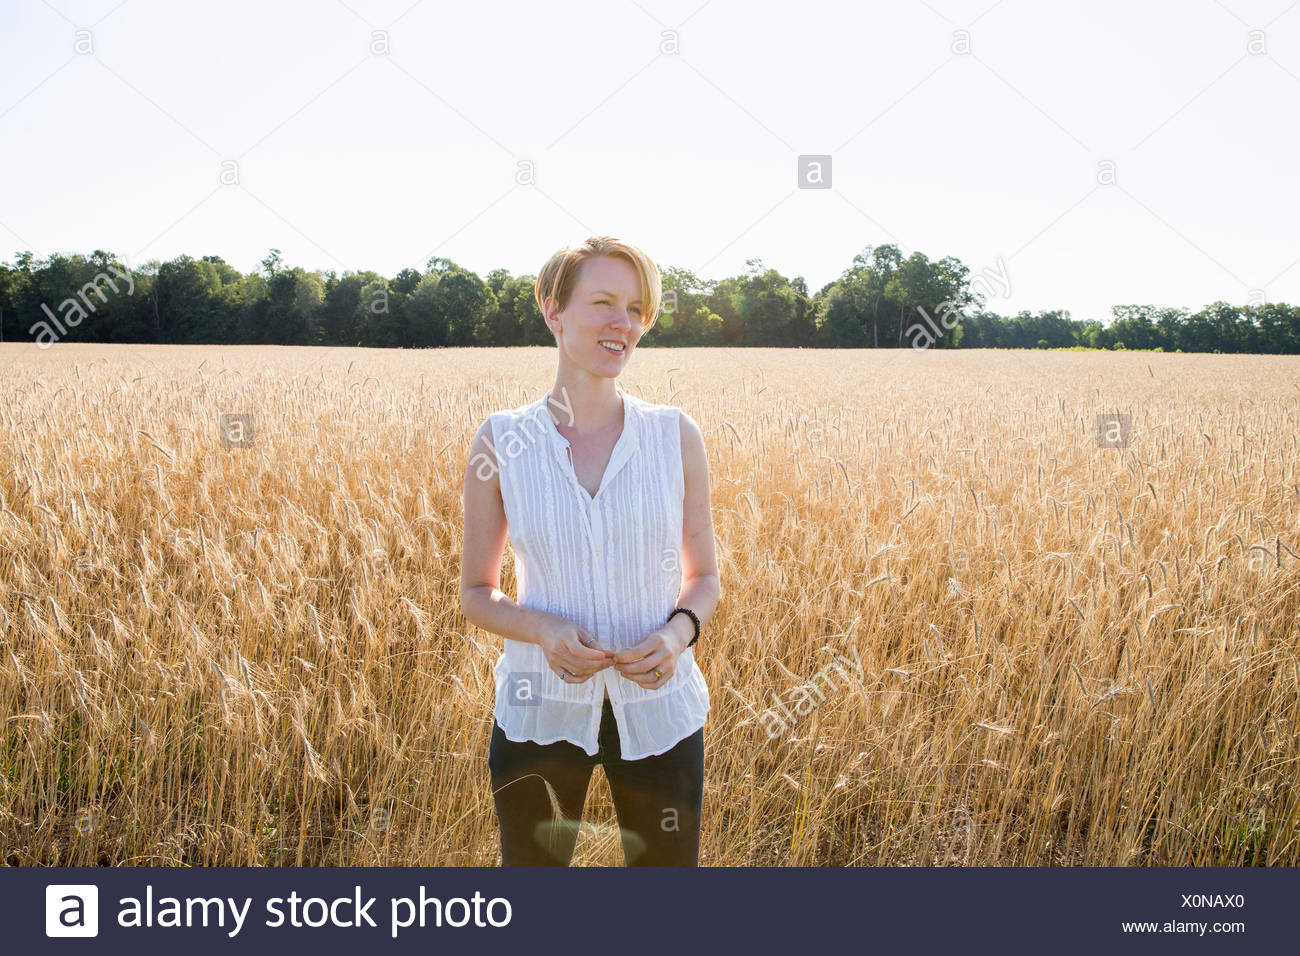 Half length portrait of a young woman standing in a cornfield. Stock Photo